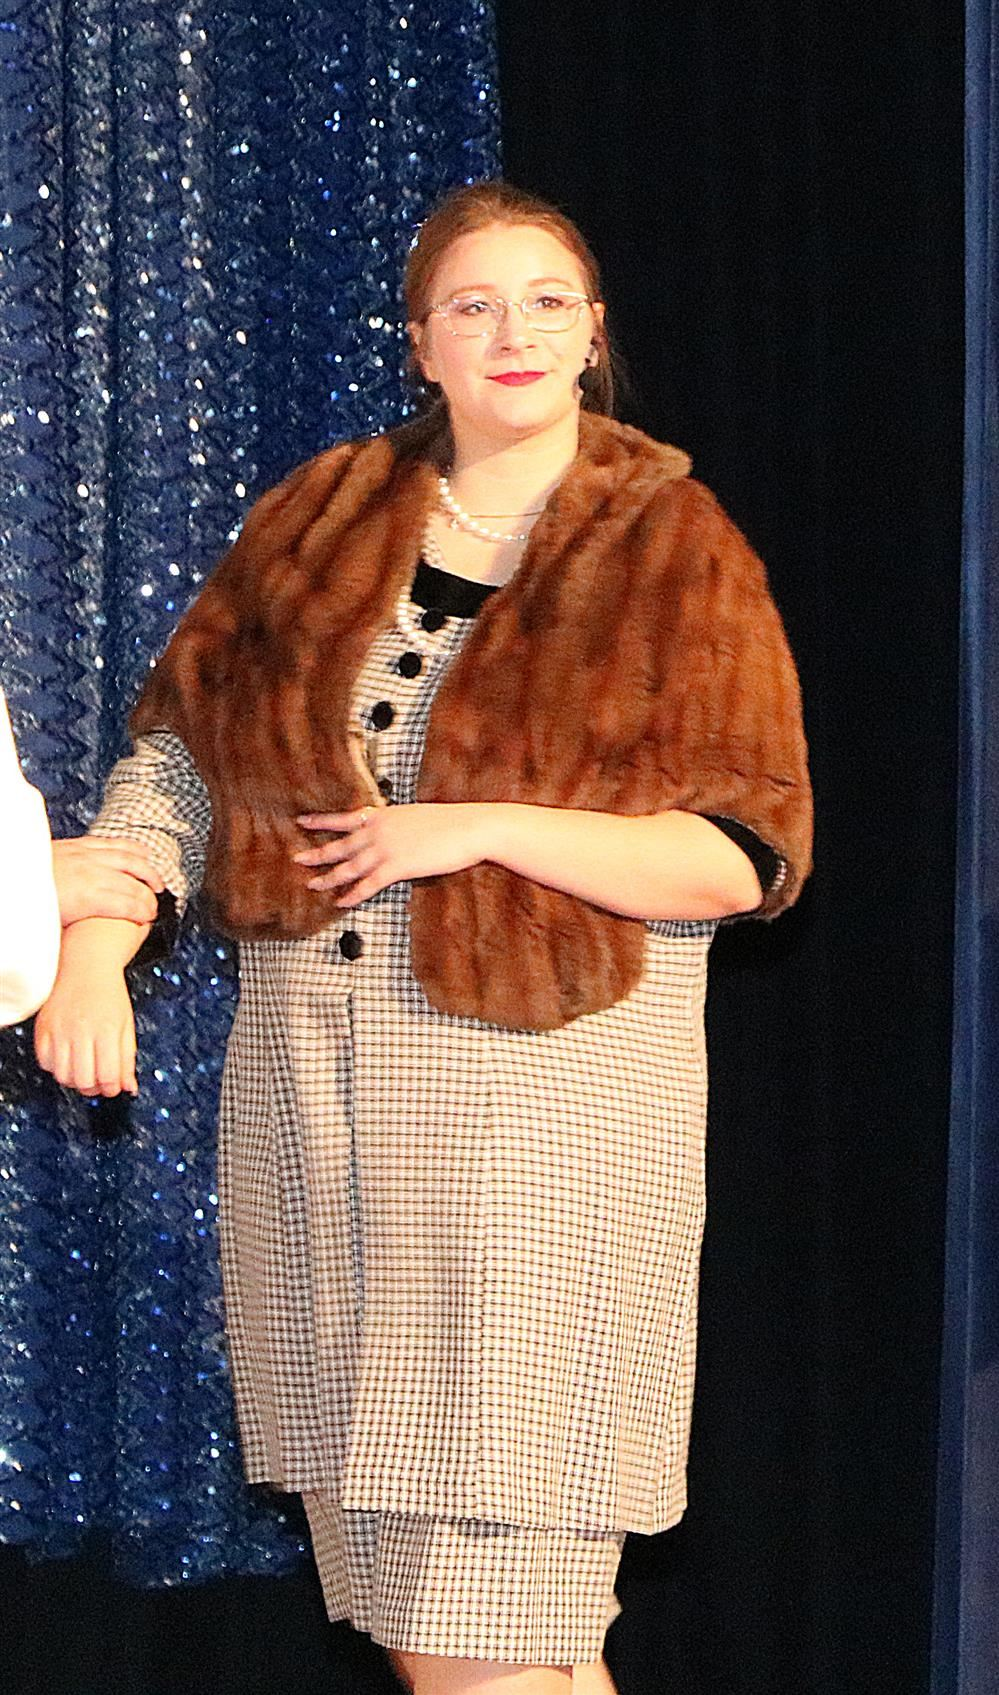 Kaitlyn Maher portrayed Mrs. Wadsworth T. Harcourt